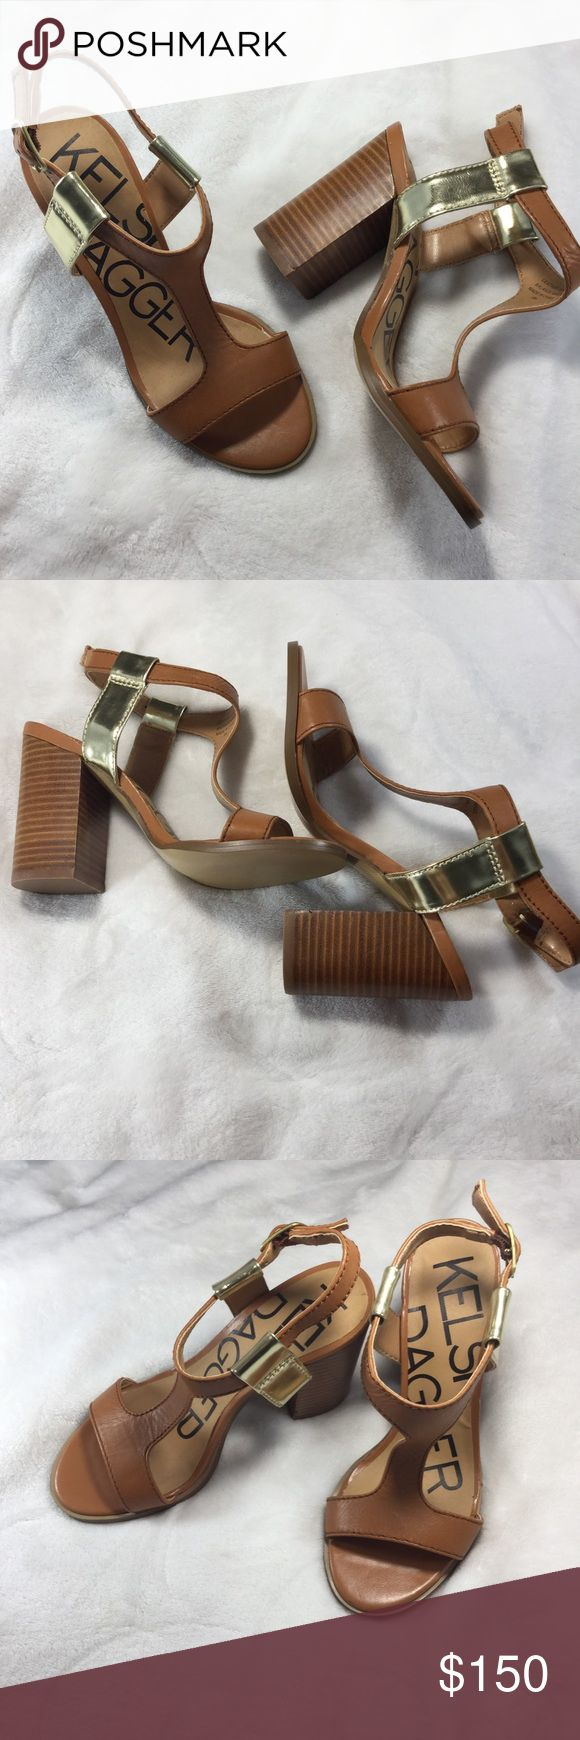 {Kelsi Dagger} Nude heels with gold accents. {Kelsi Dagger} Nude heels with gold accents. Sz 6. Pristine condition. Only tried on. Never worn outside. Like brand new. Kelsi Dagger Shoes Sandals